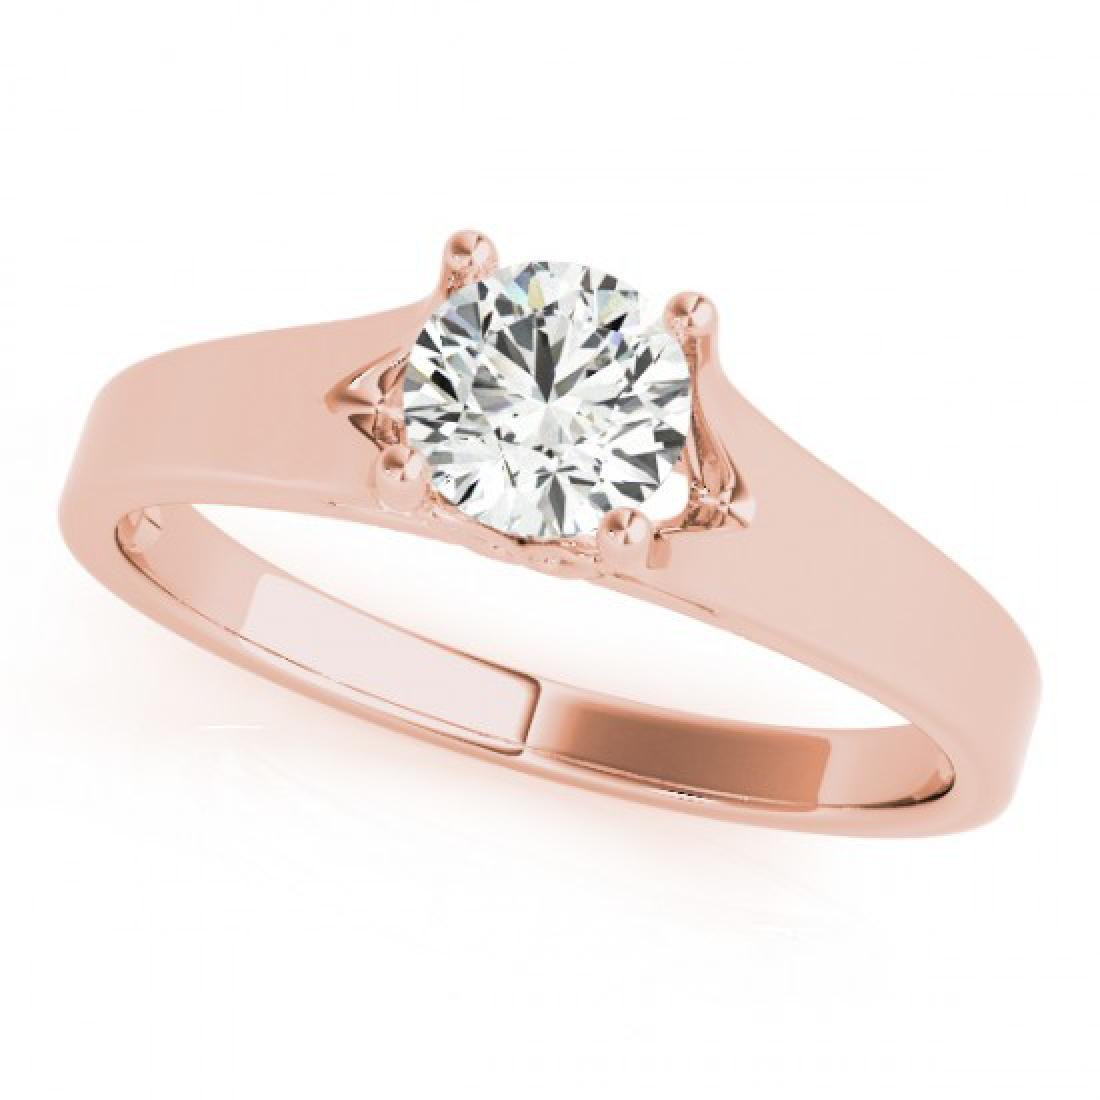 1.5 CTW Certified VS/SI Diamond Solitaire Ring 14K Rose - 2